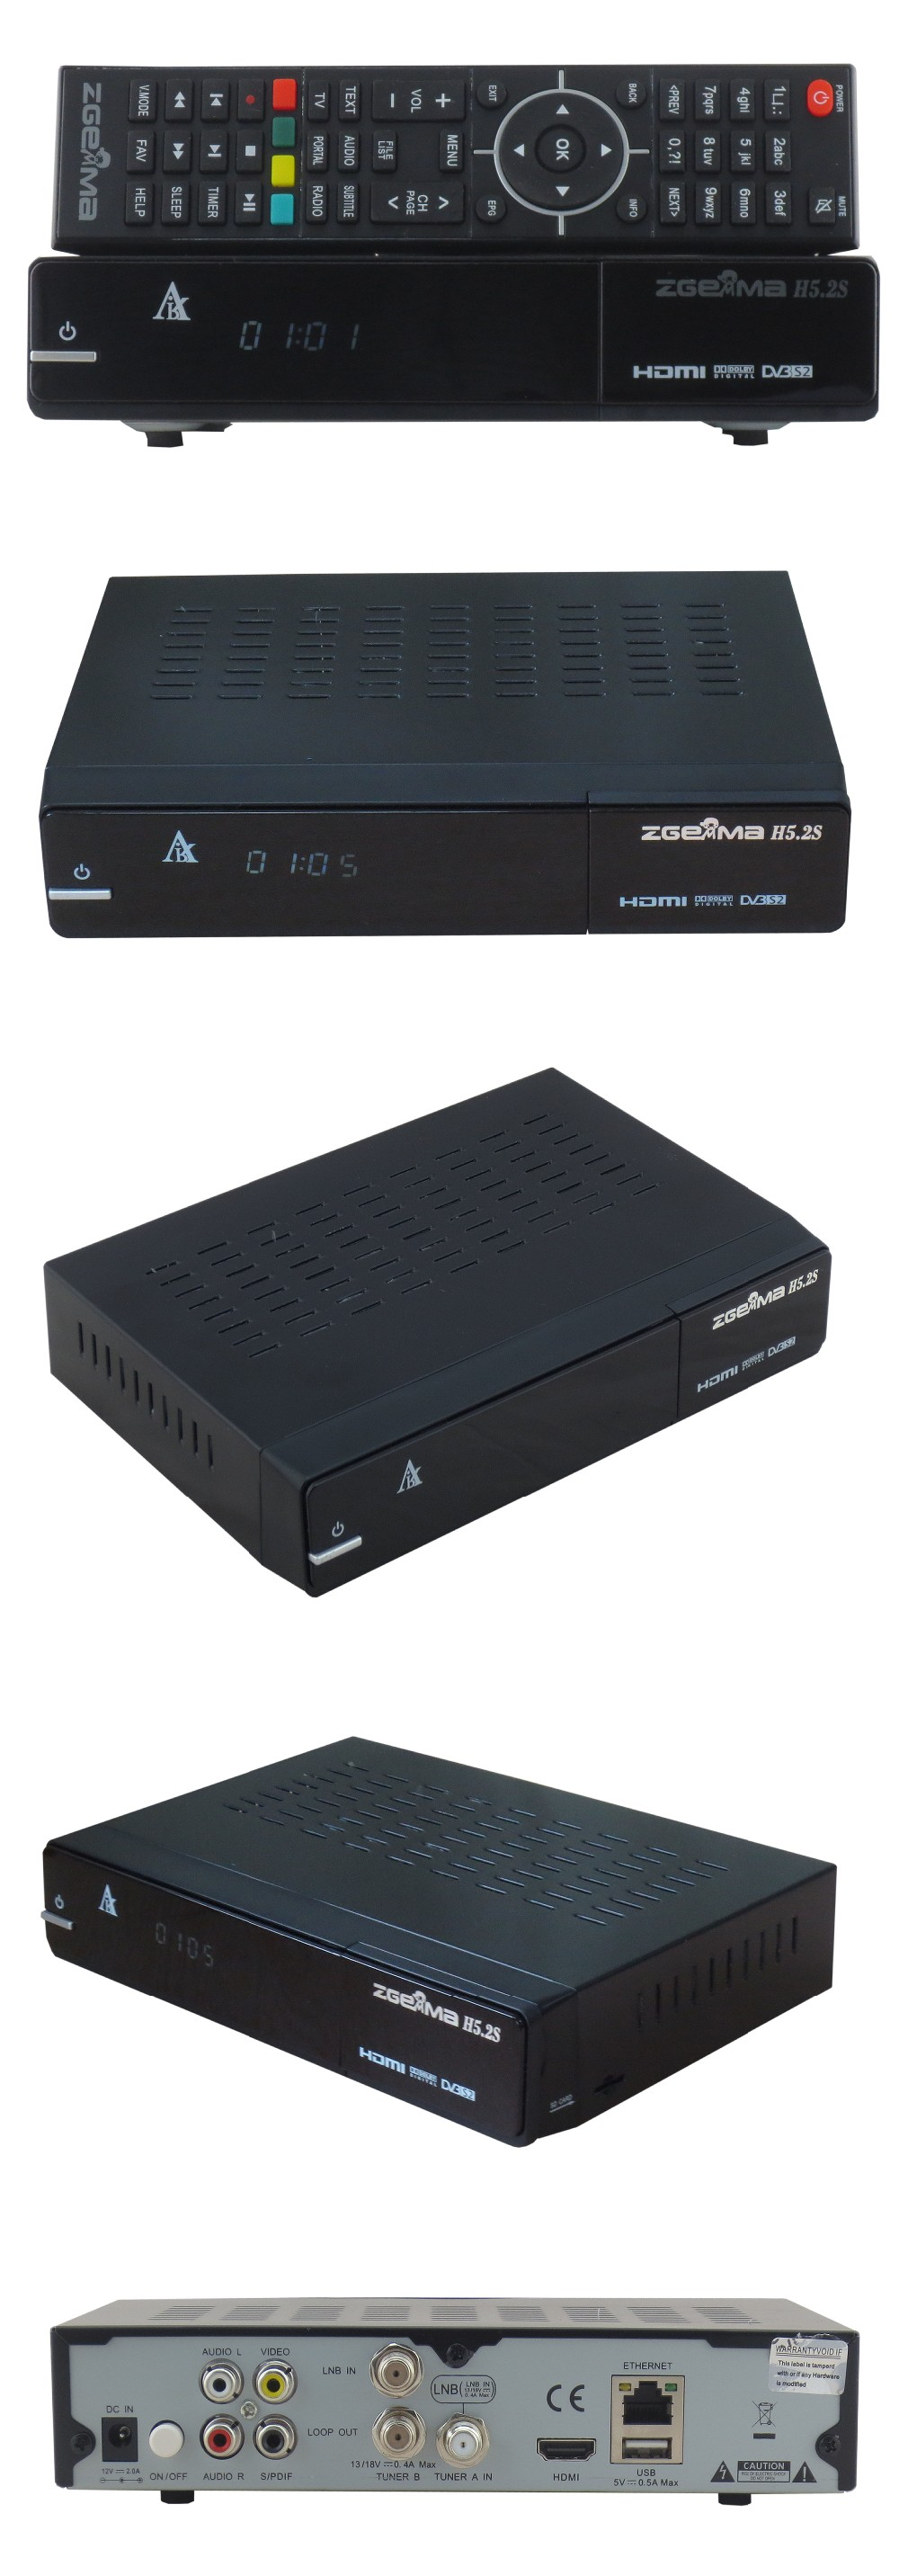 New ! super fast running satellite receiver twin tuner DVB S/S2 H.265 decoding ZGEMMA H5.2S